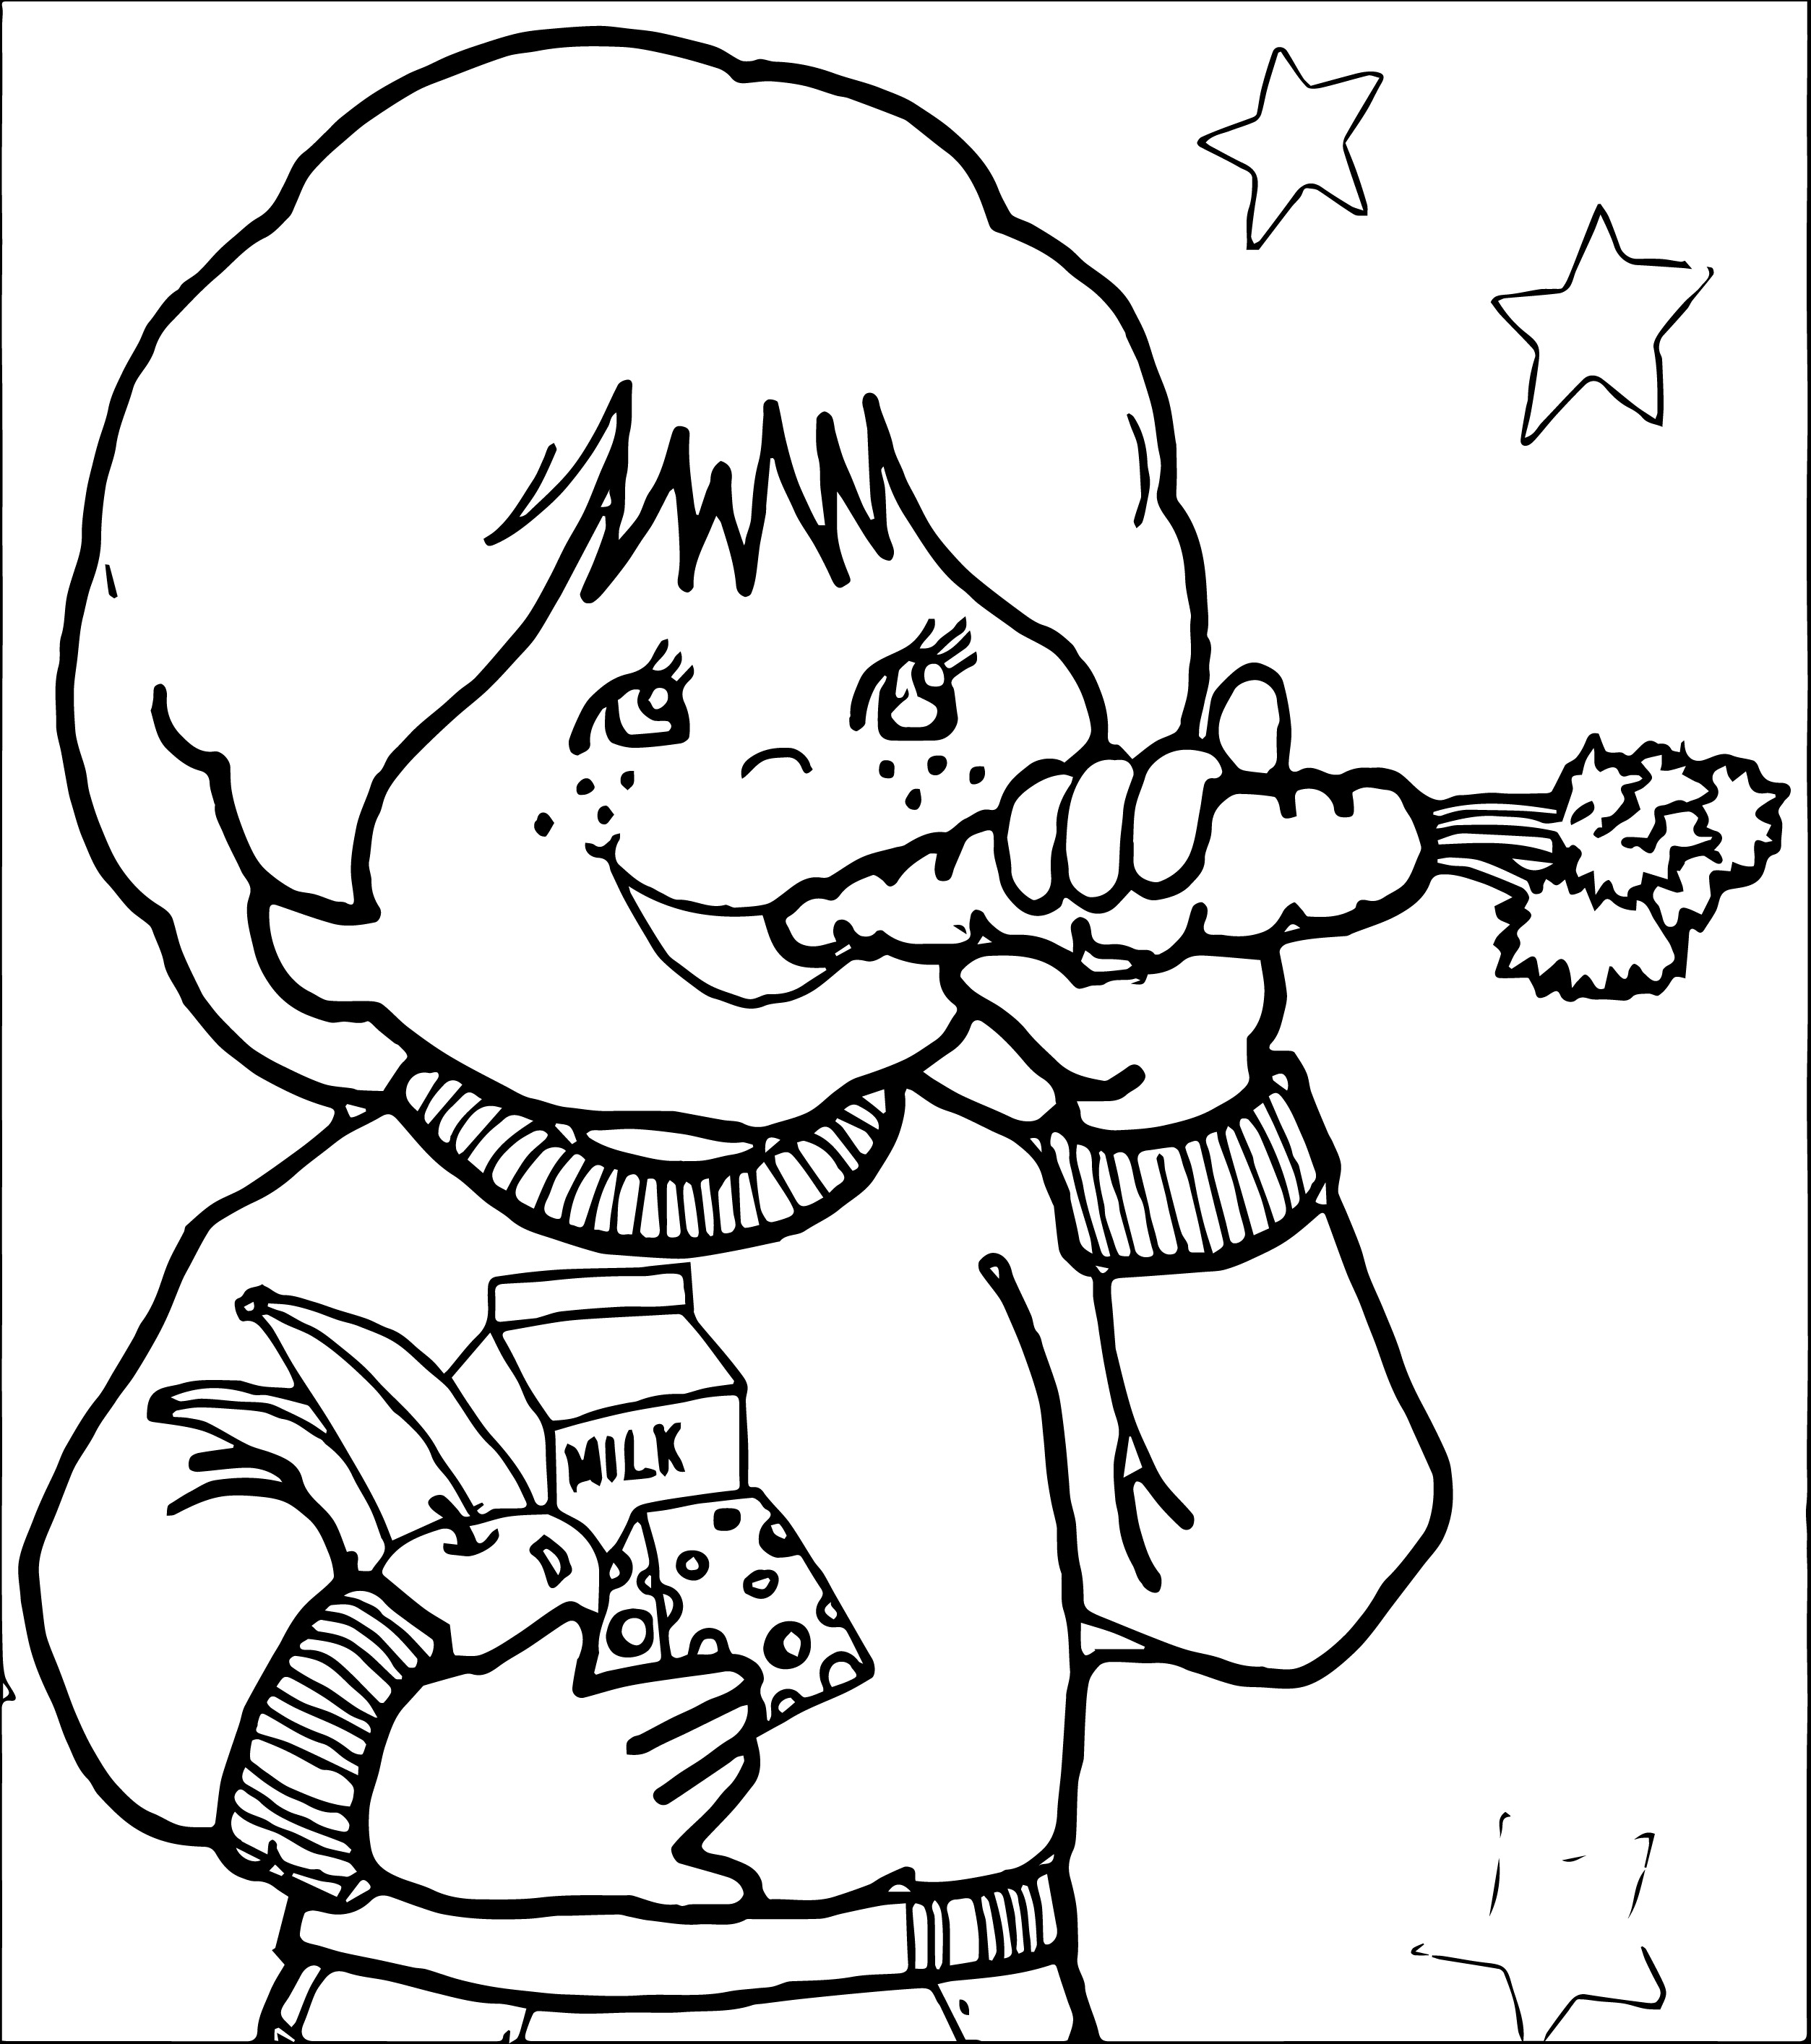 healhty coloring pages - photo#19